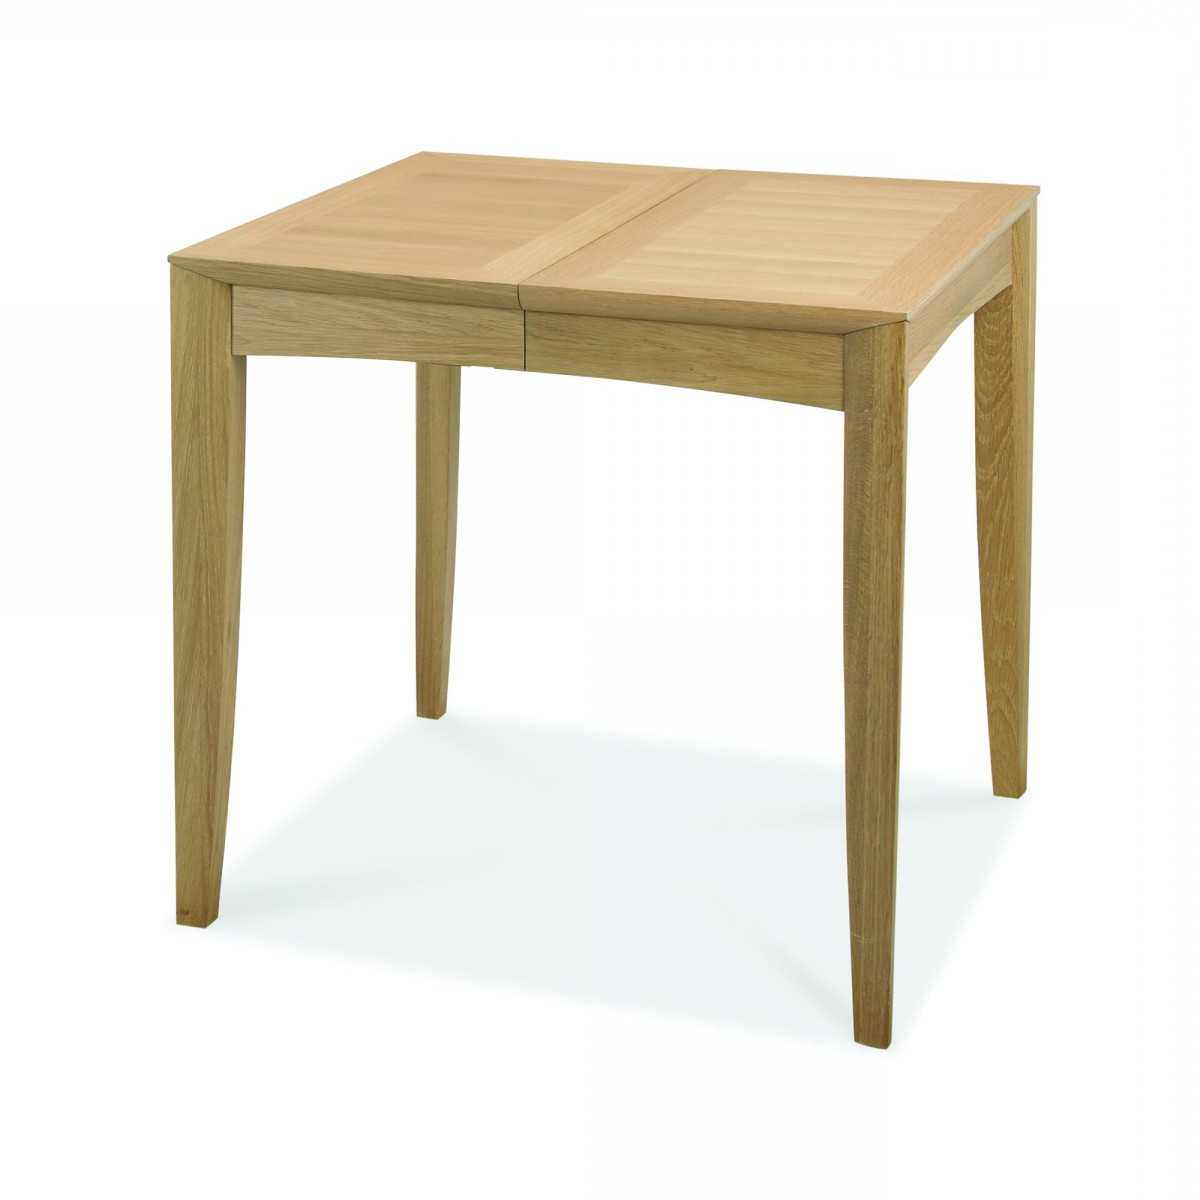 Oakley 2-4 Extending Table